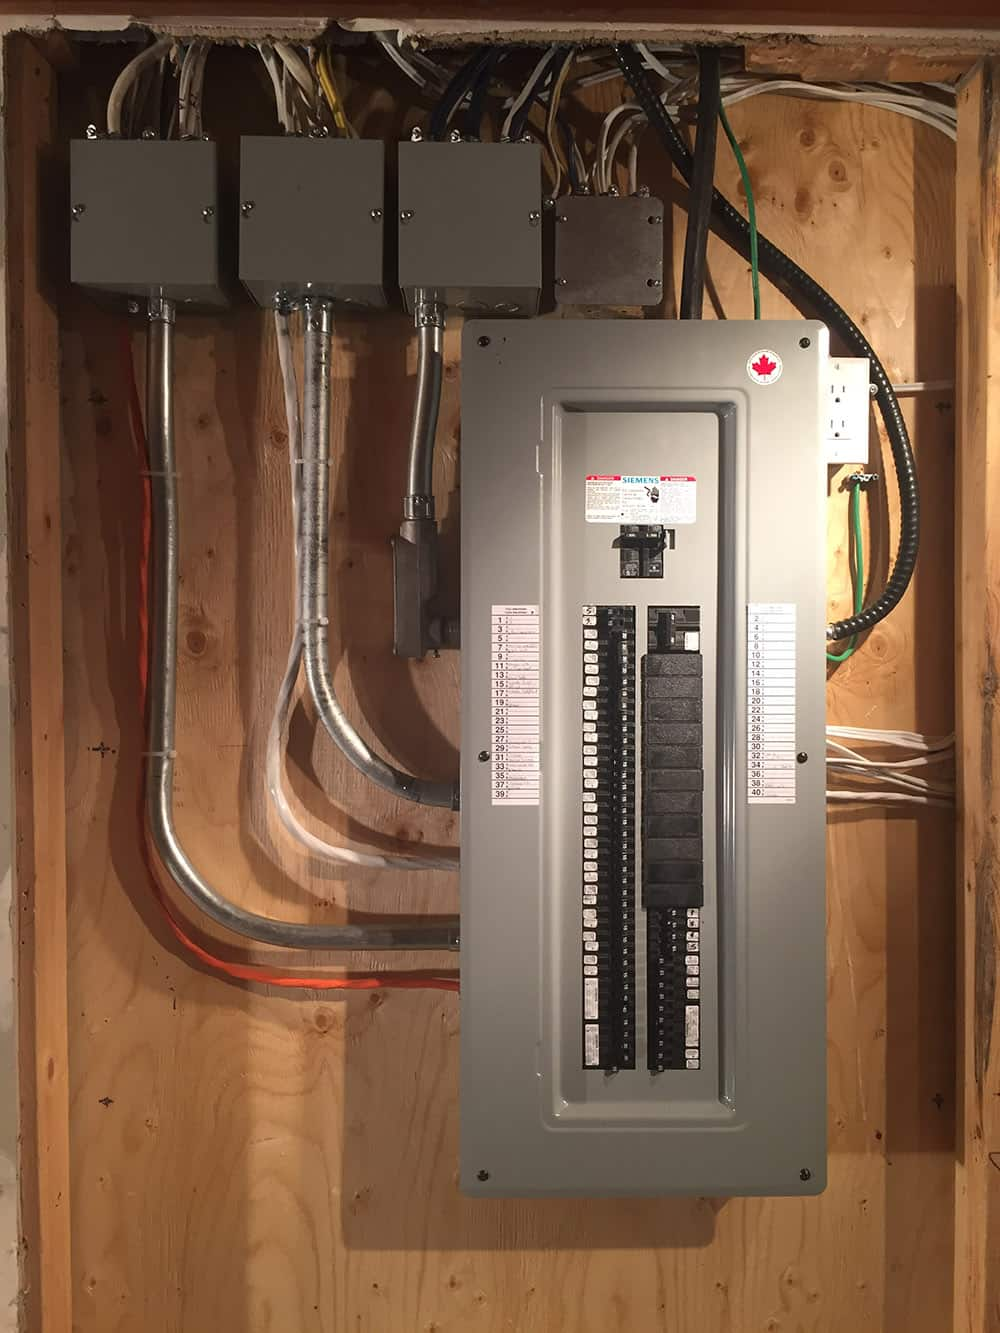 hight resolution of electrical panel and wiring upgrades and replacements